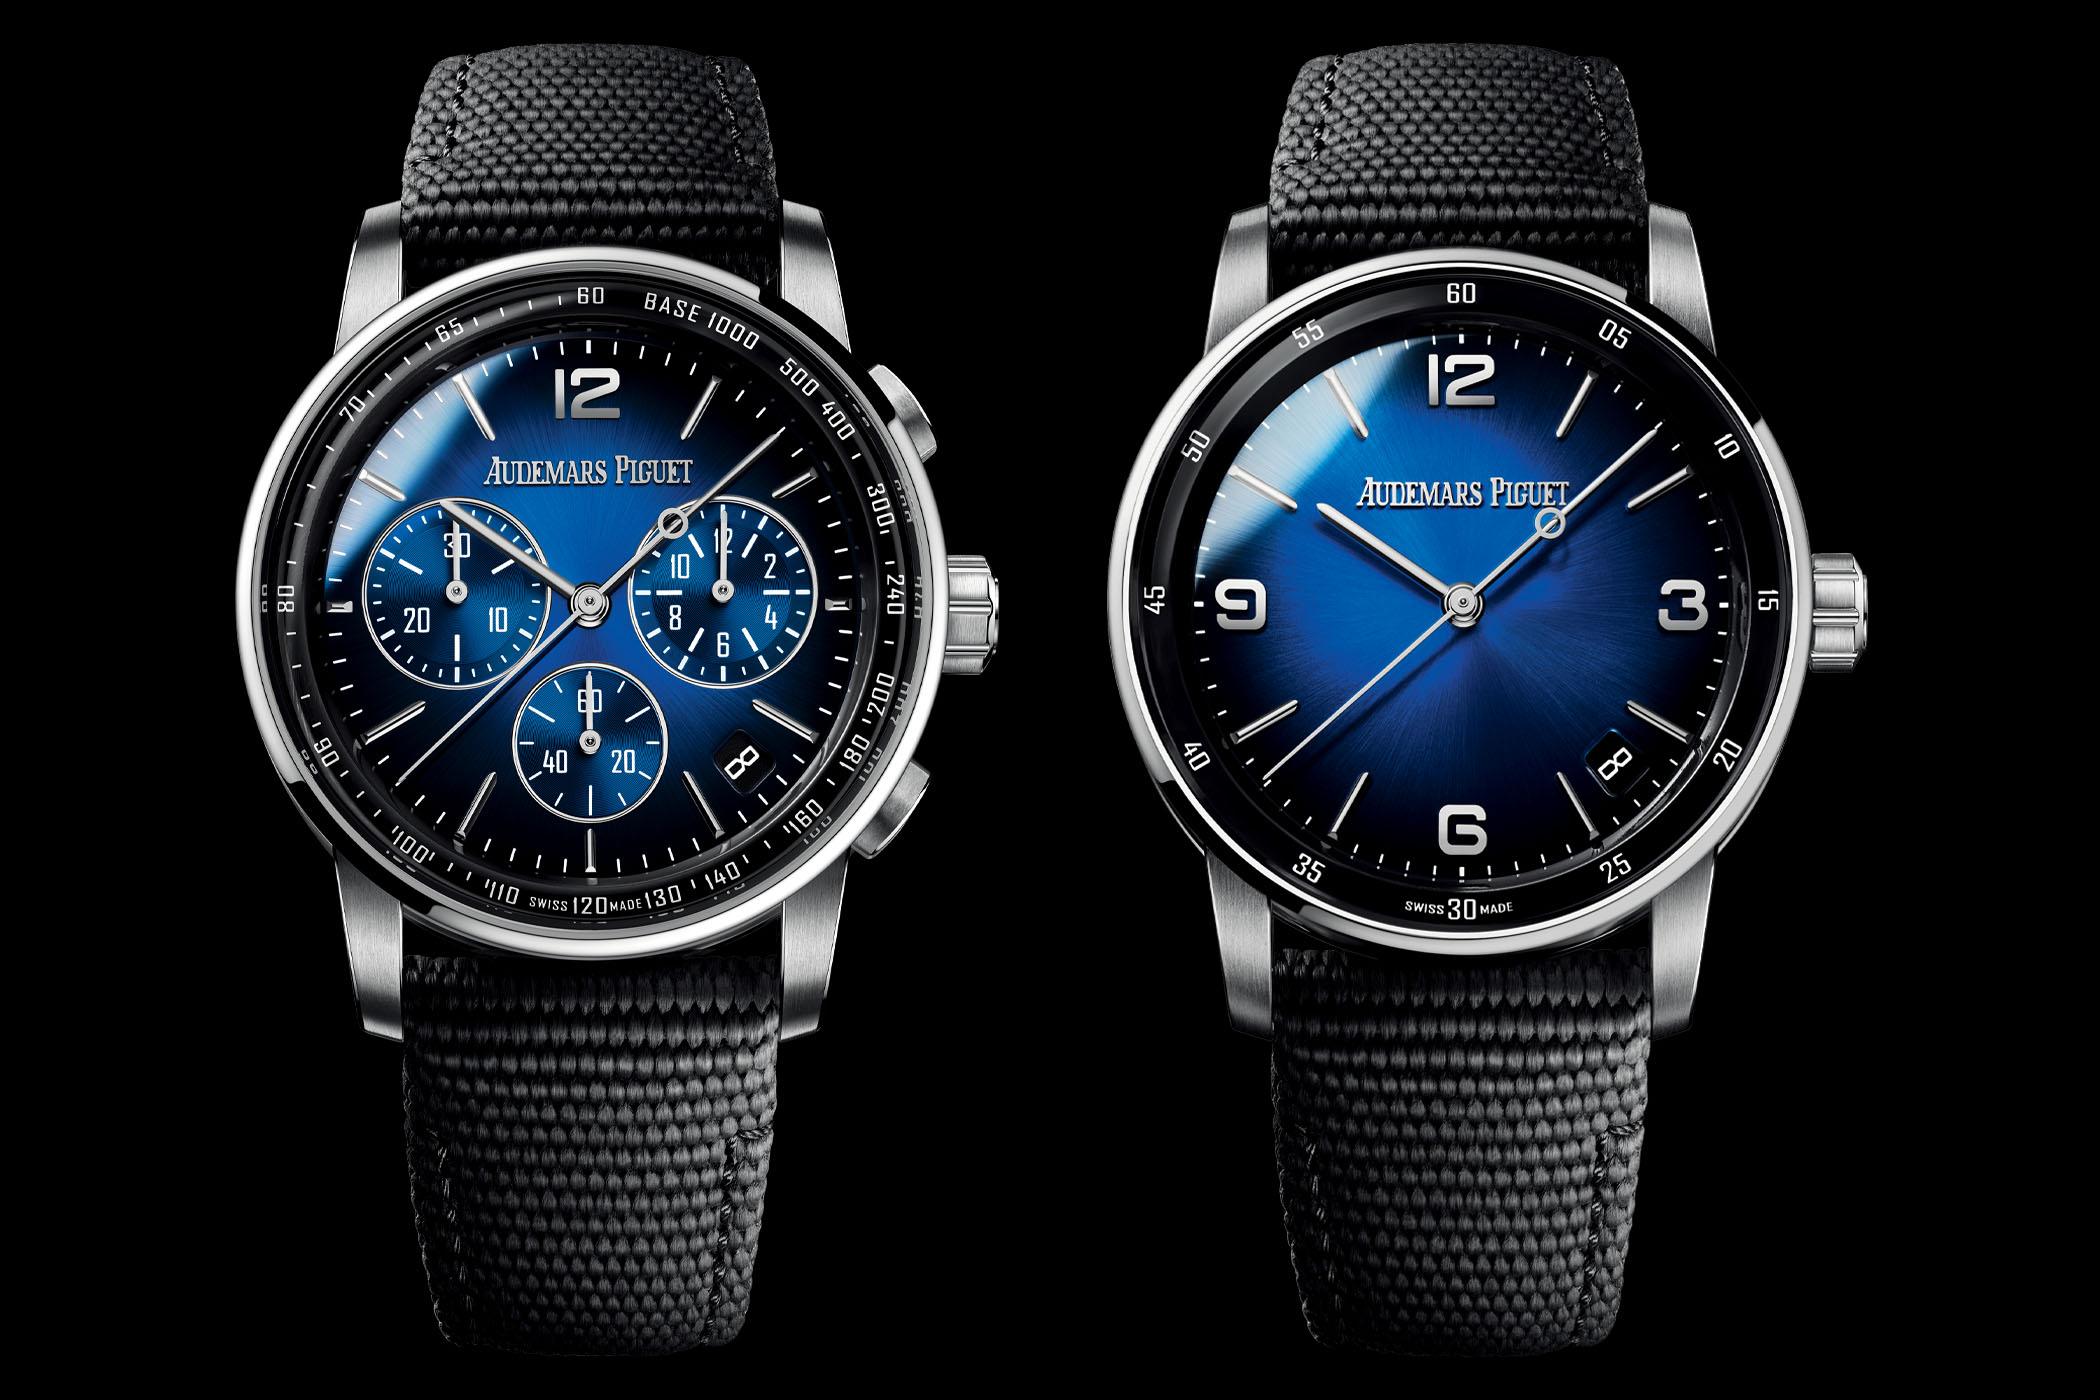 2021 Code 11.59 by Audemars Piguet Selfwinding and Chronograph White Gold Smoked Blue Dials